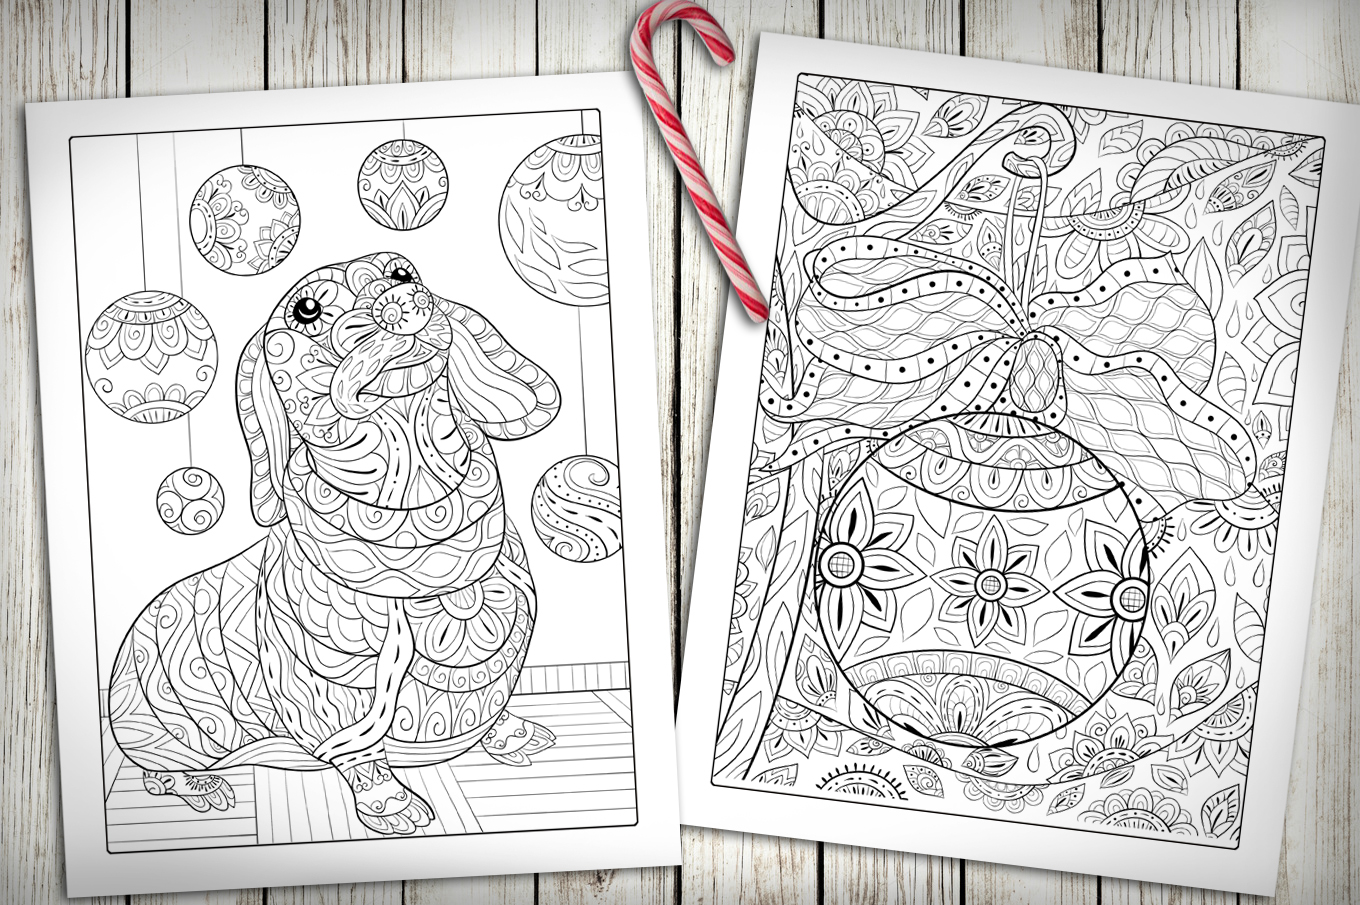 reindeer drawing - Google Search | Rudolph coloring pages, Santa ... | 905x1360